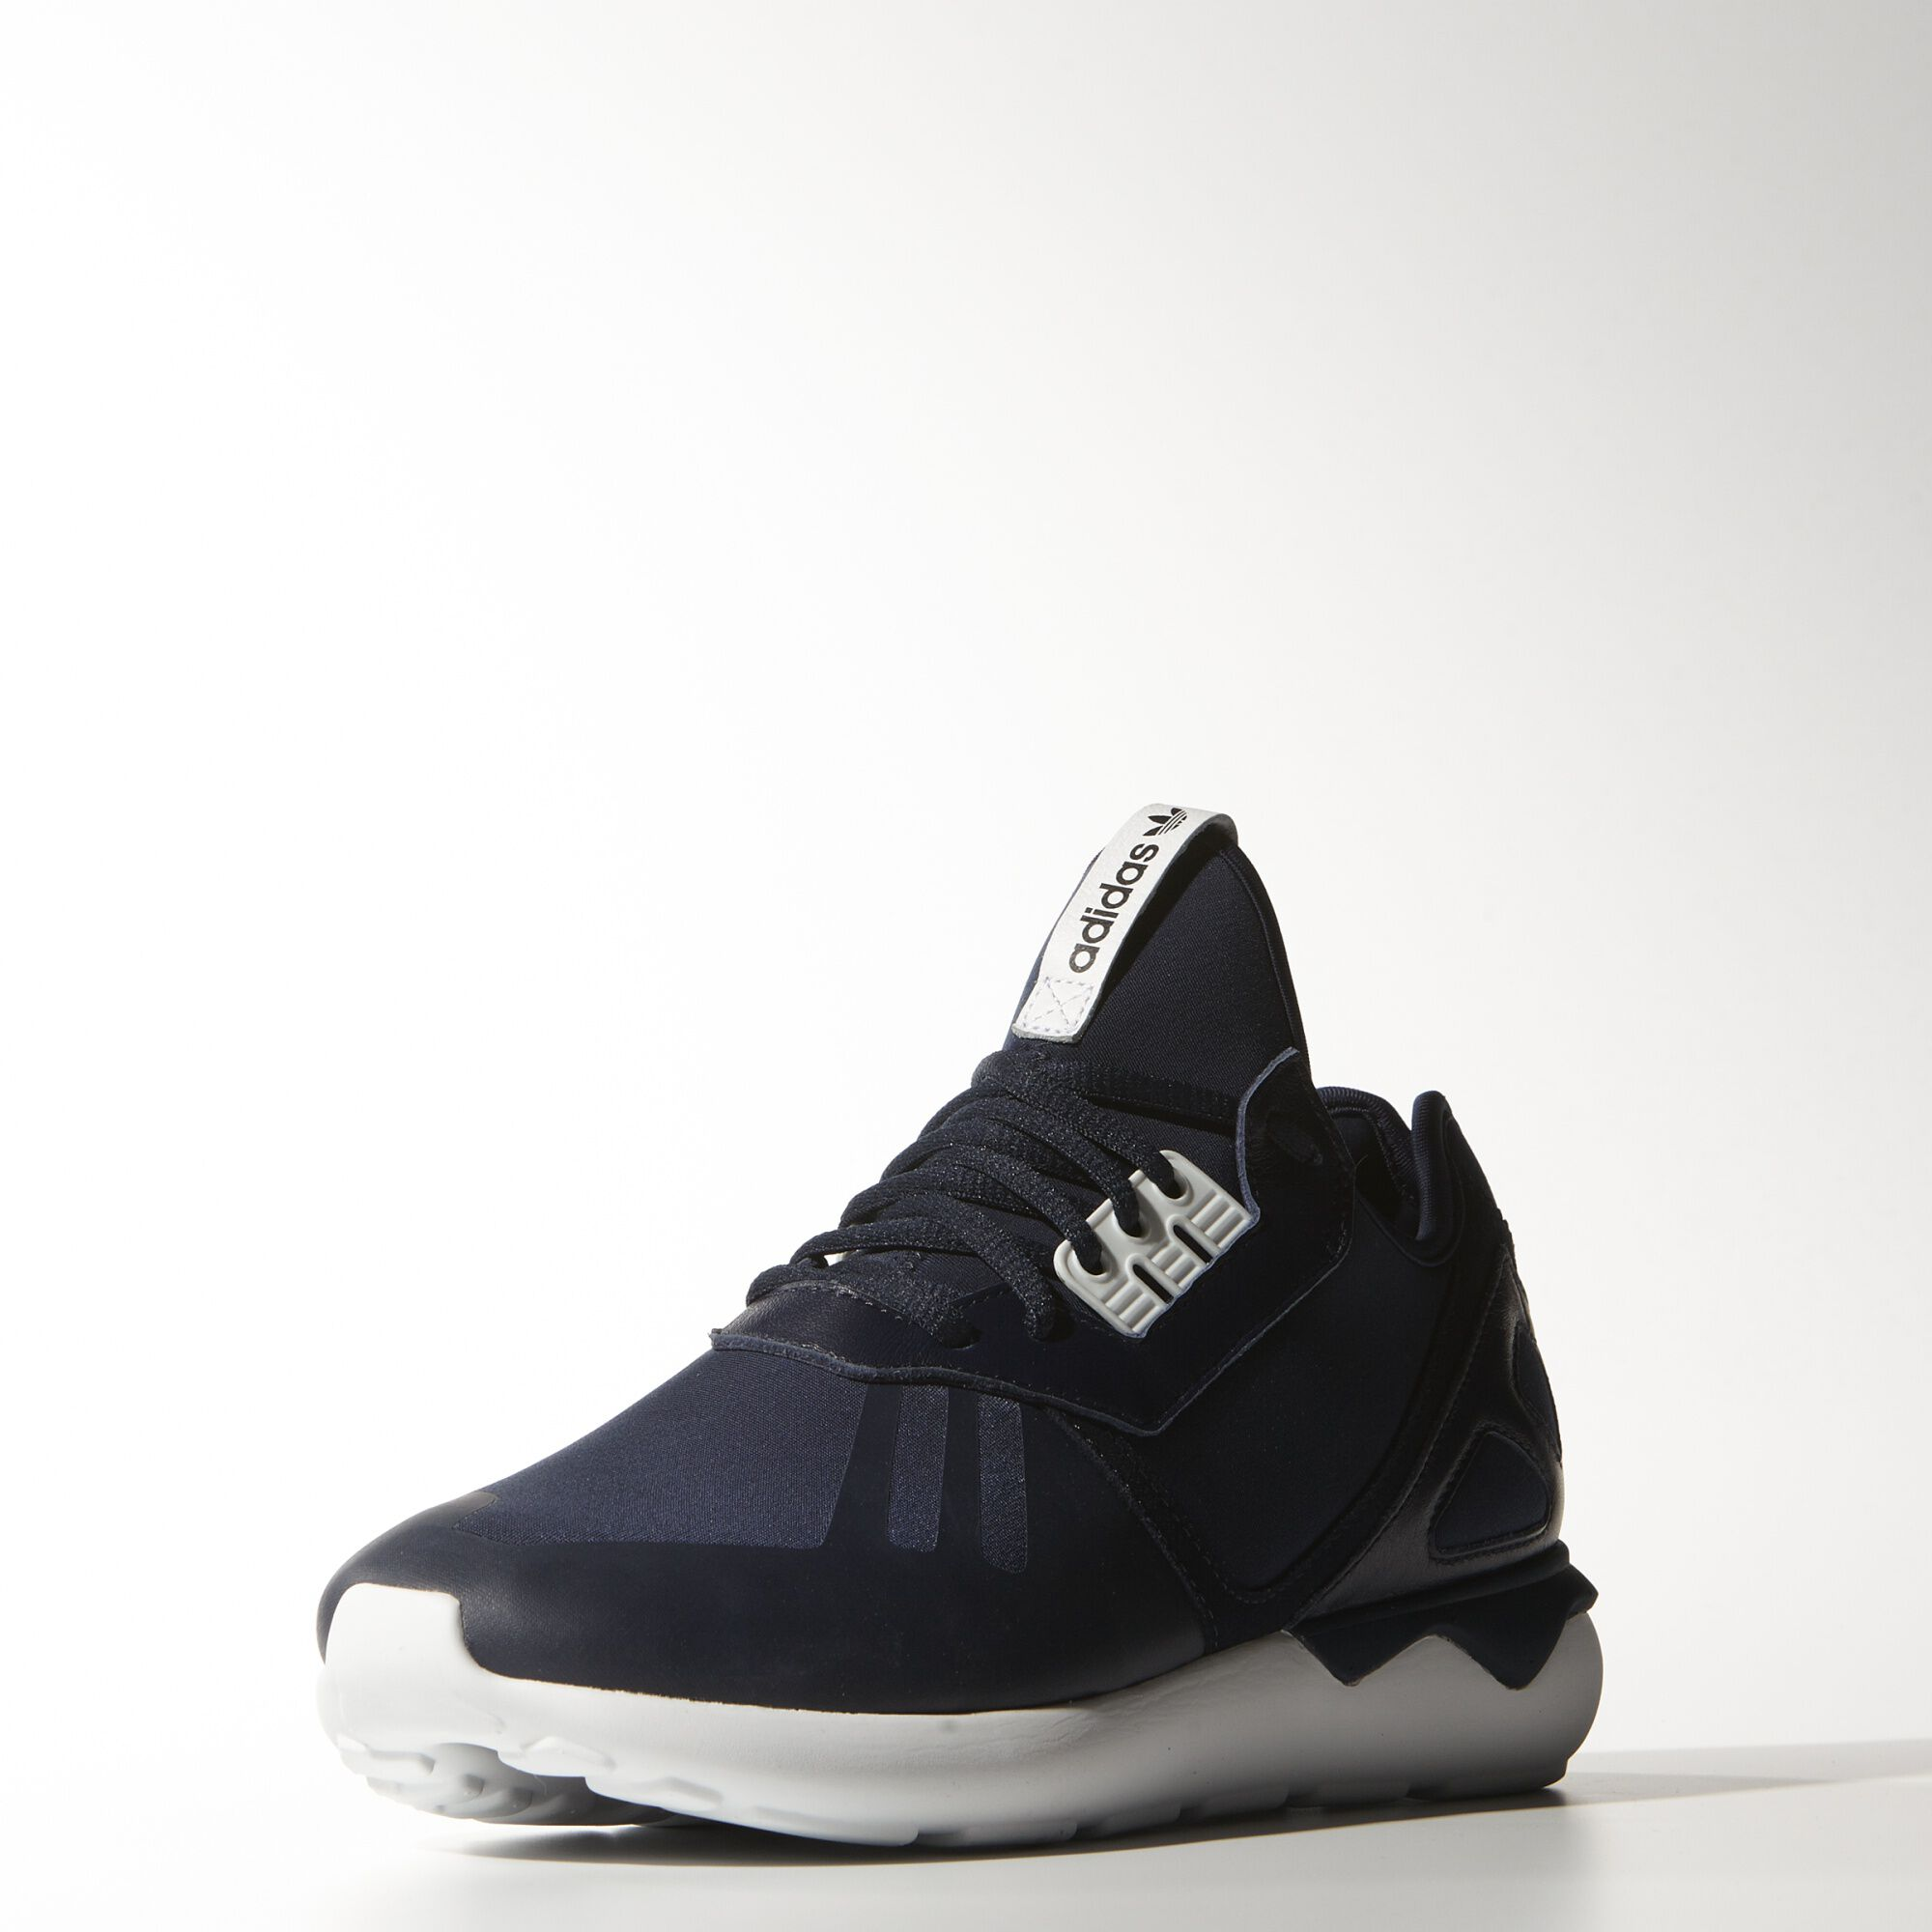 adidas - Tenis Tubular Runner Collegiate Navy / Collegiate Navy / White B41273